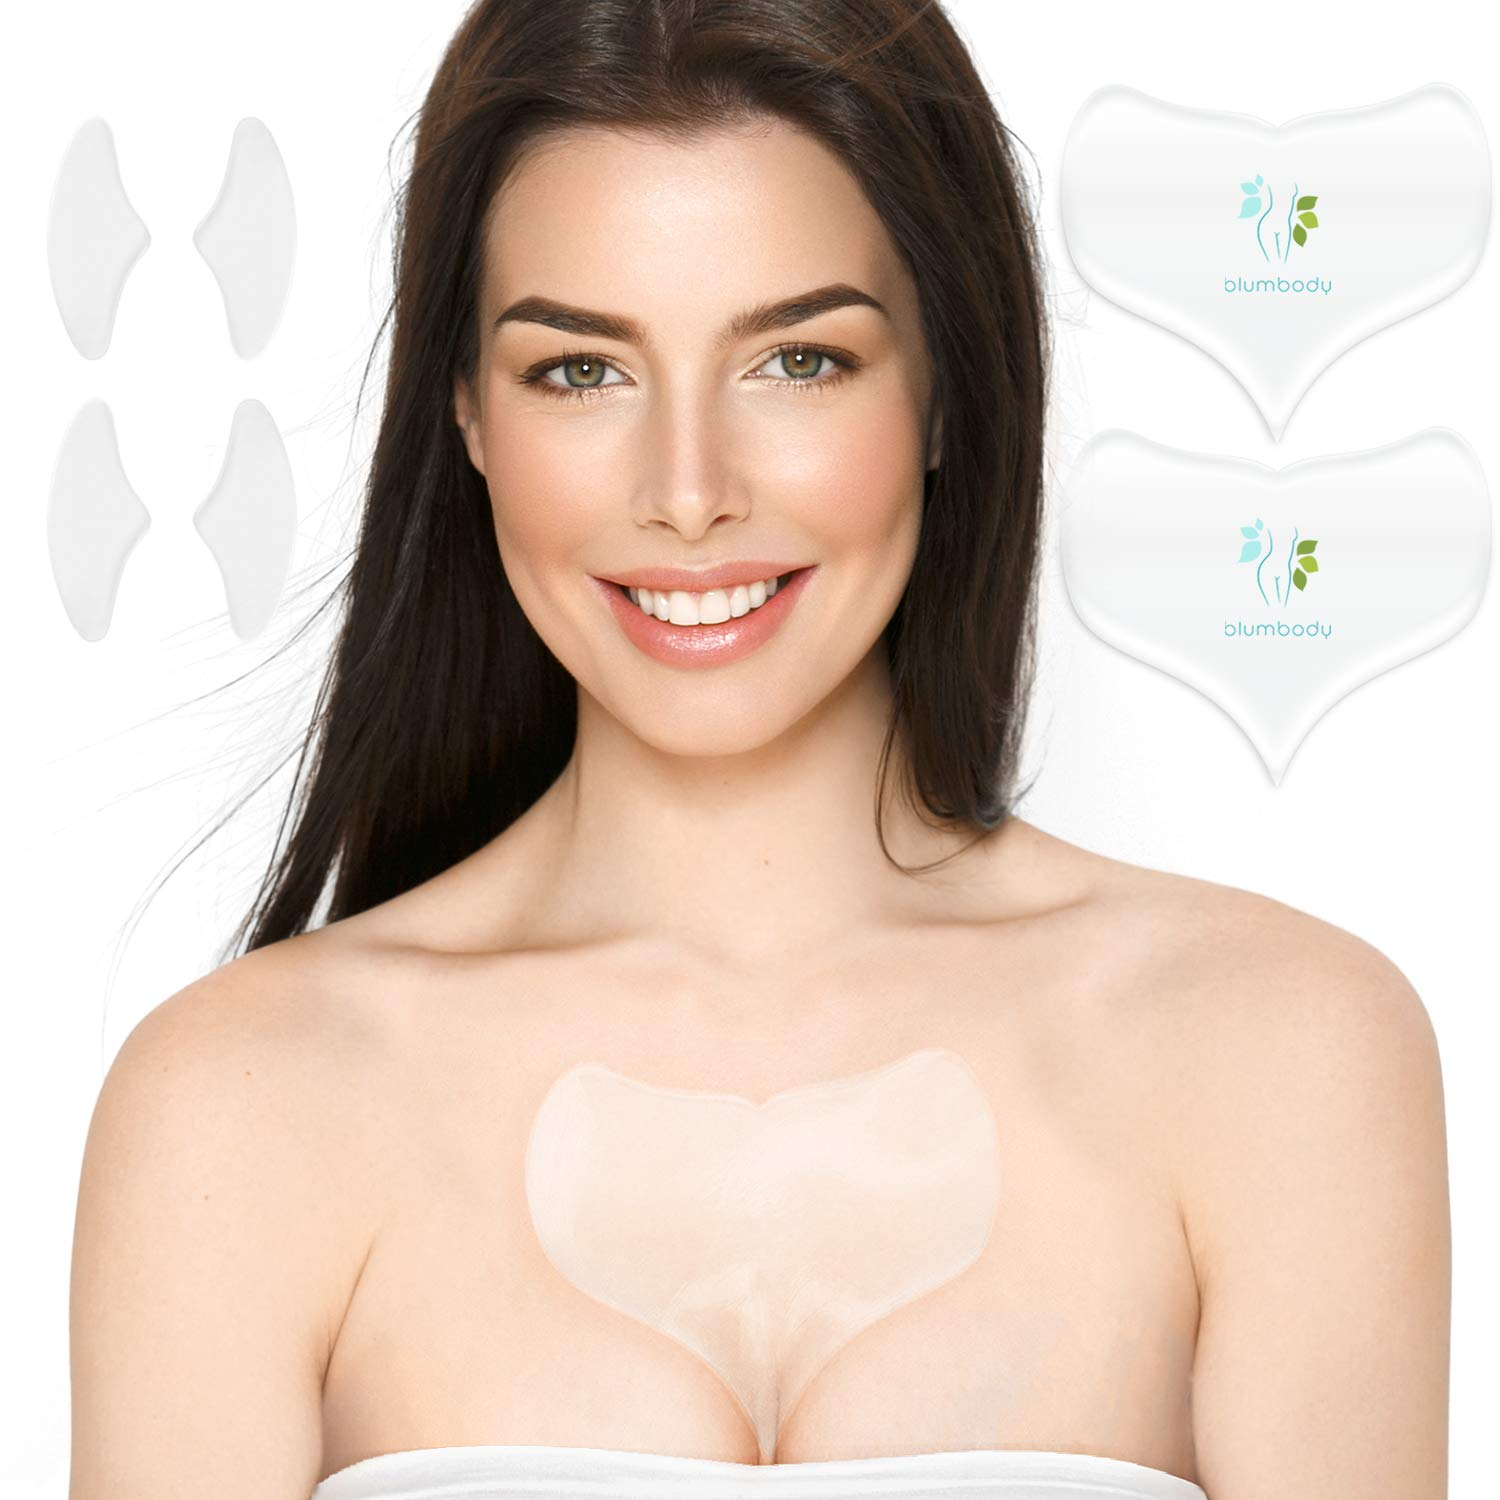 6a2d2970de1b Amazon.com   Decollete Pad for Chest Wrinkles - Set of 2 Silicone Chest  Pads for Decollete and Cleavage Wrinkles Prevention - Reusable Overnight  Anti ...